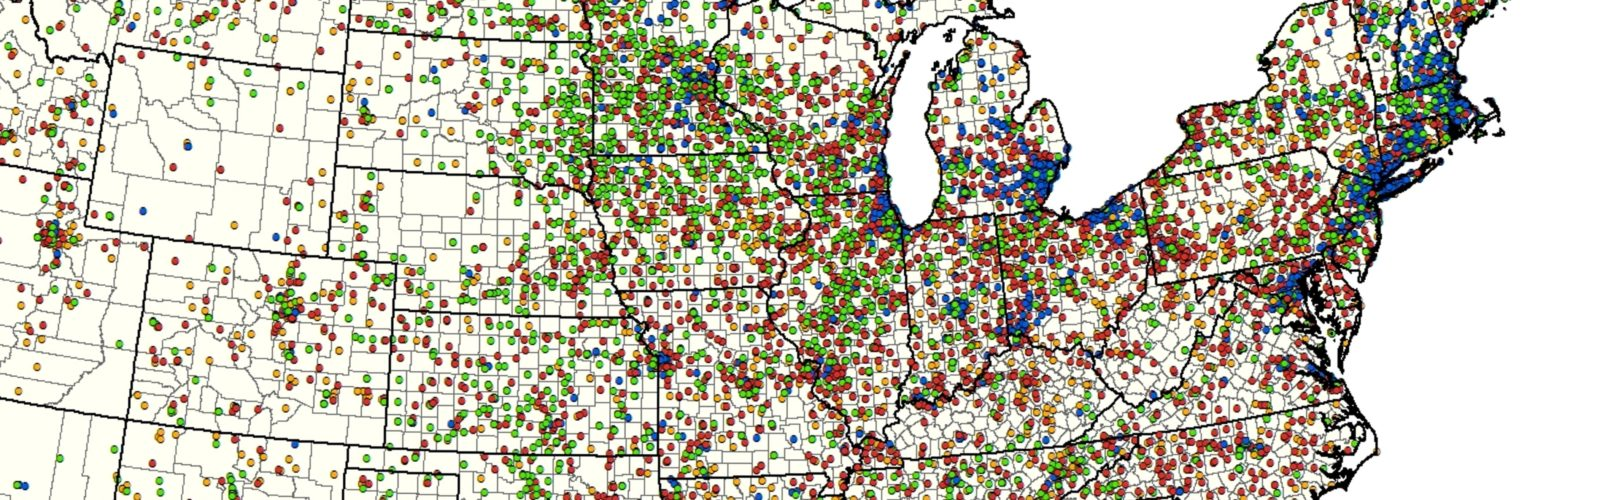 map of co-ops in the upper midwest and northeast central U.S.